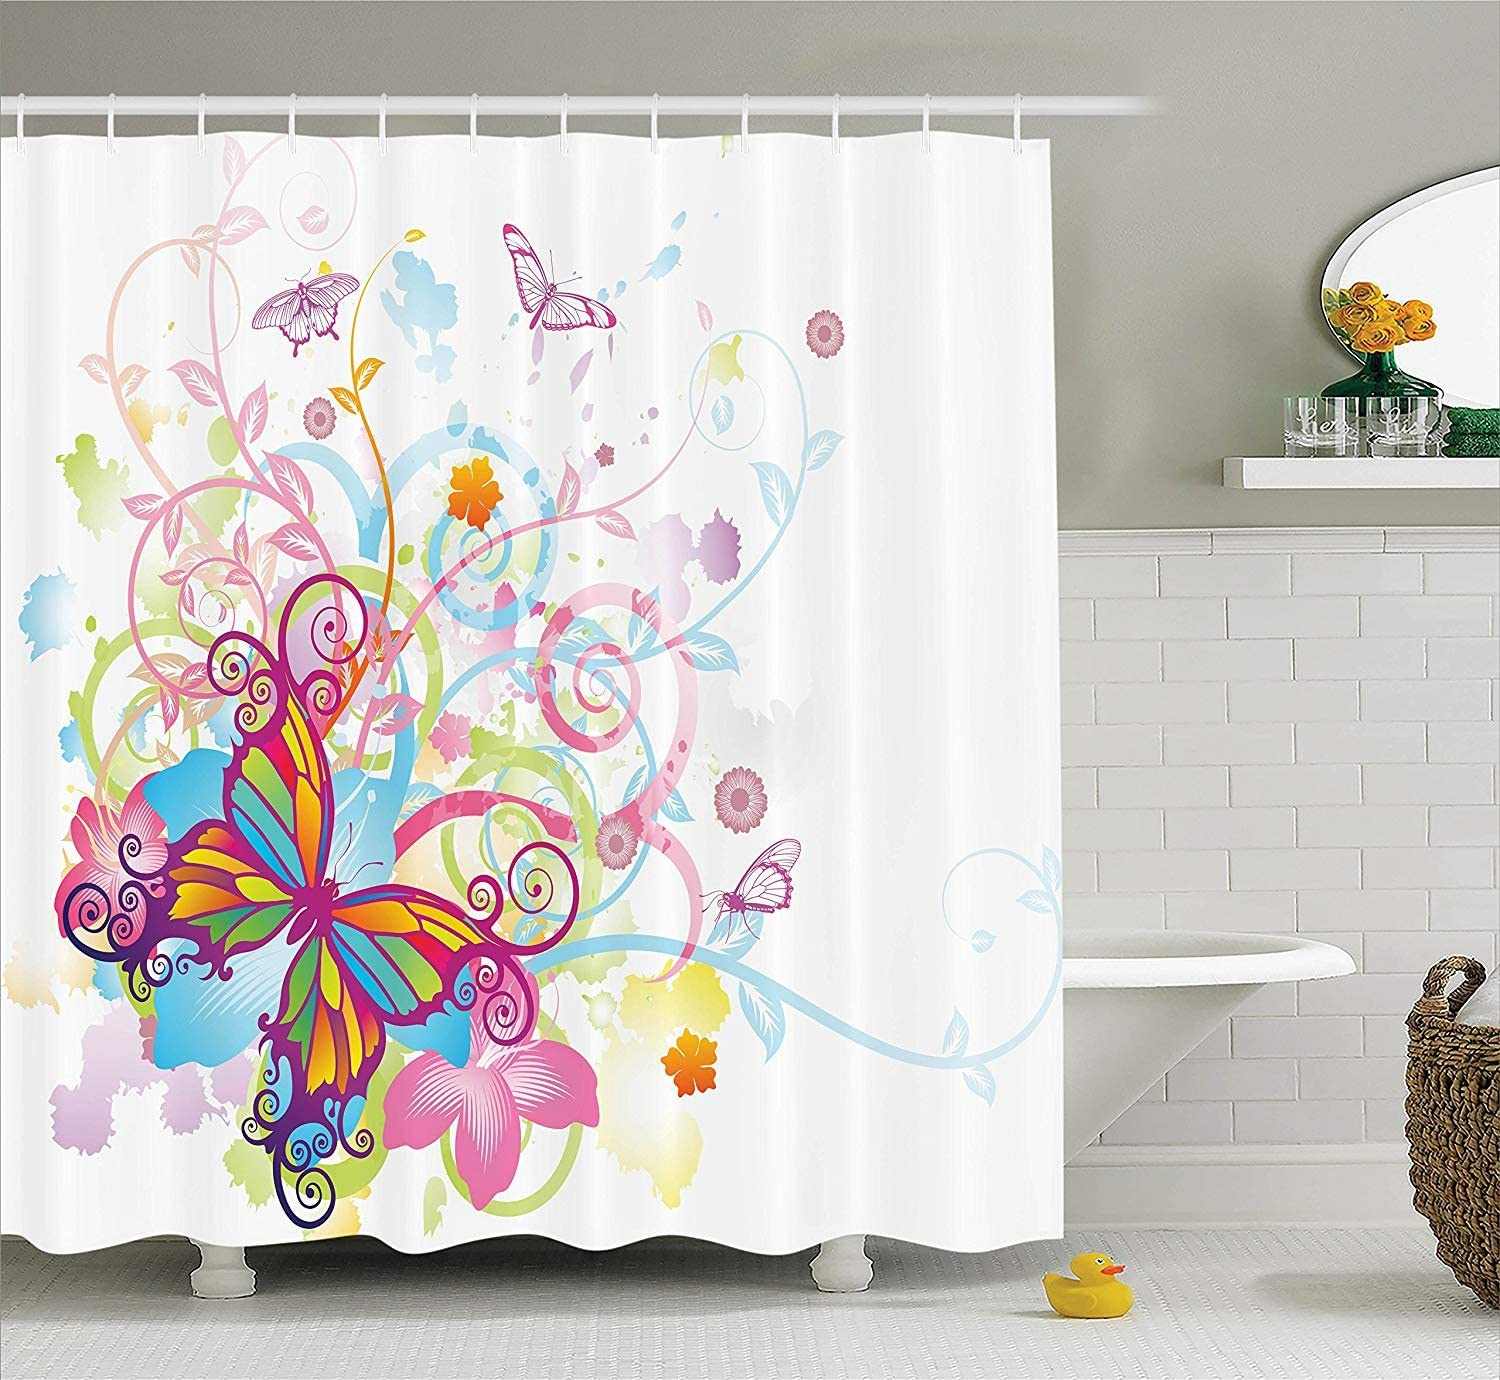 Ambesonne Butterfly Shower Curtain, Butterfly with Floral Elements and Leaves Curvy Branches Ornament Print, Cloth Fabric Bathroom Decor Set with Hooks, 75